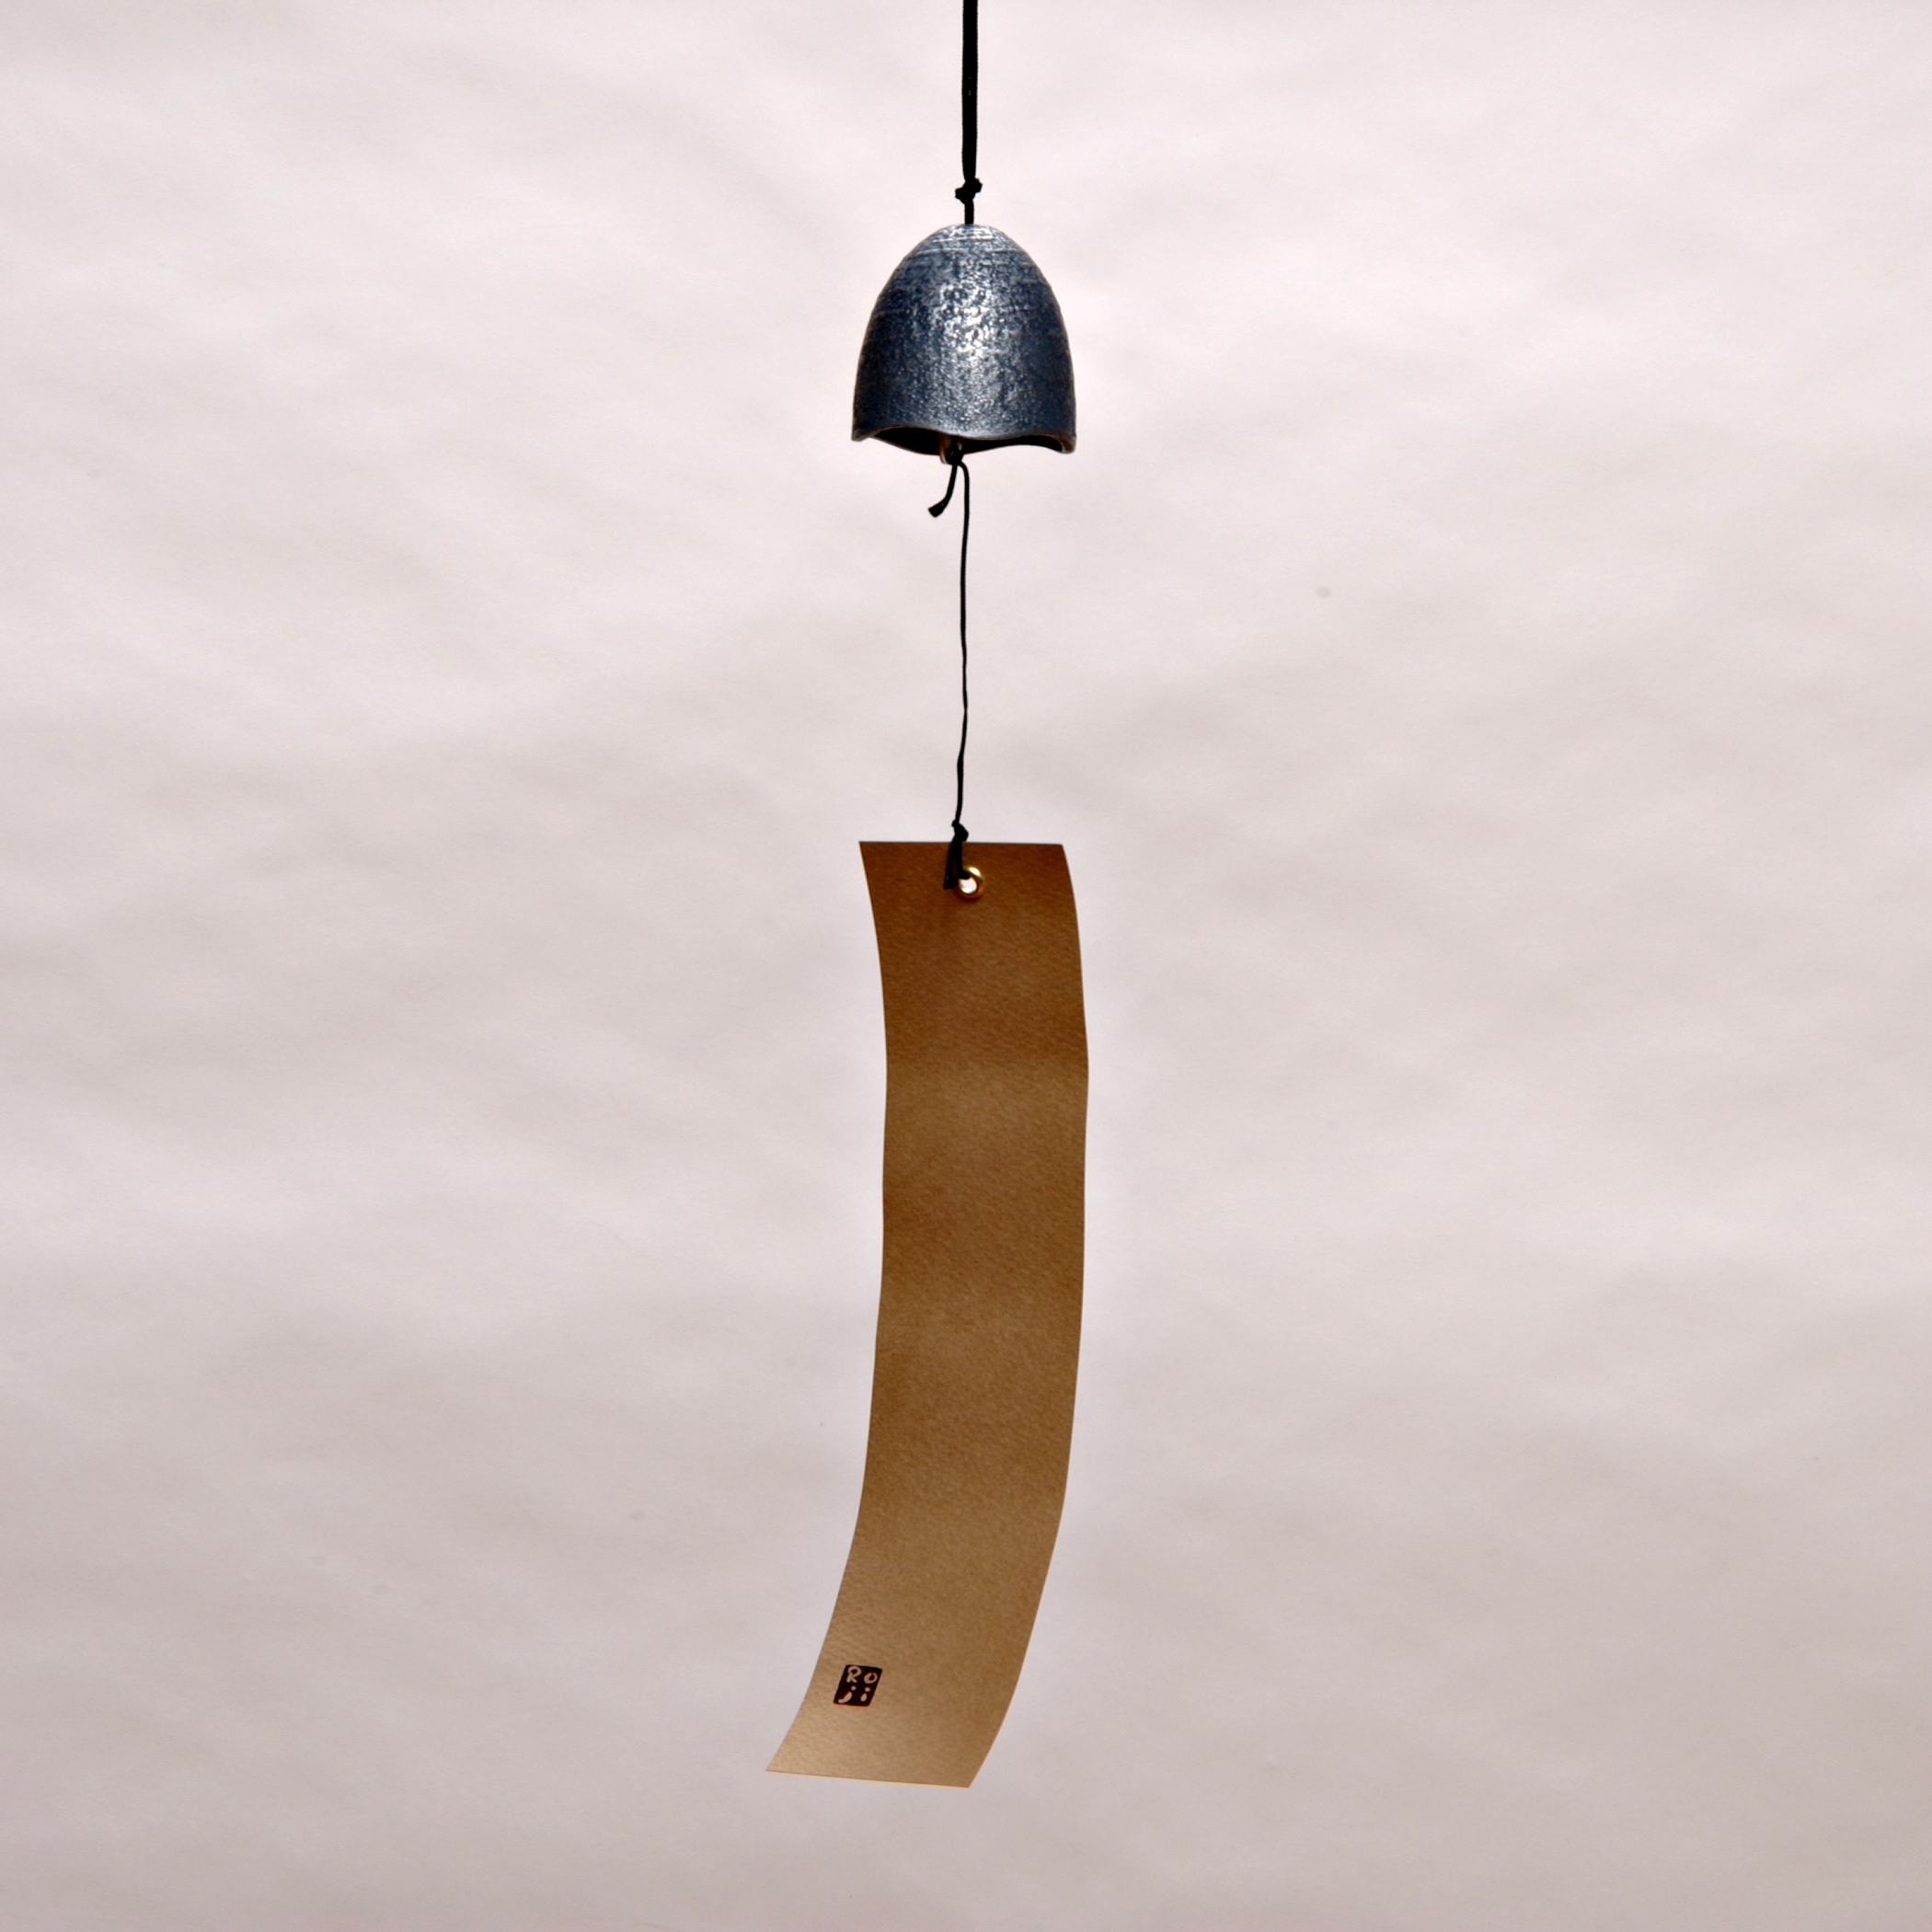 1000+ images about Wind Chimes on Pinterest.